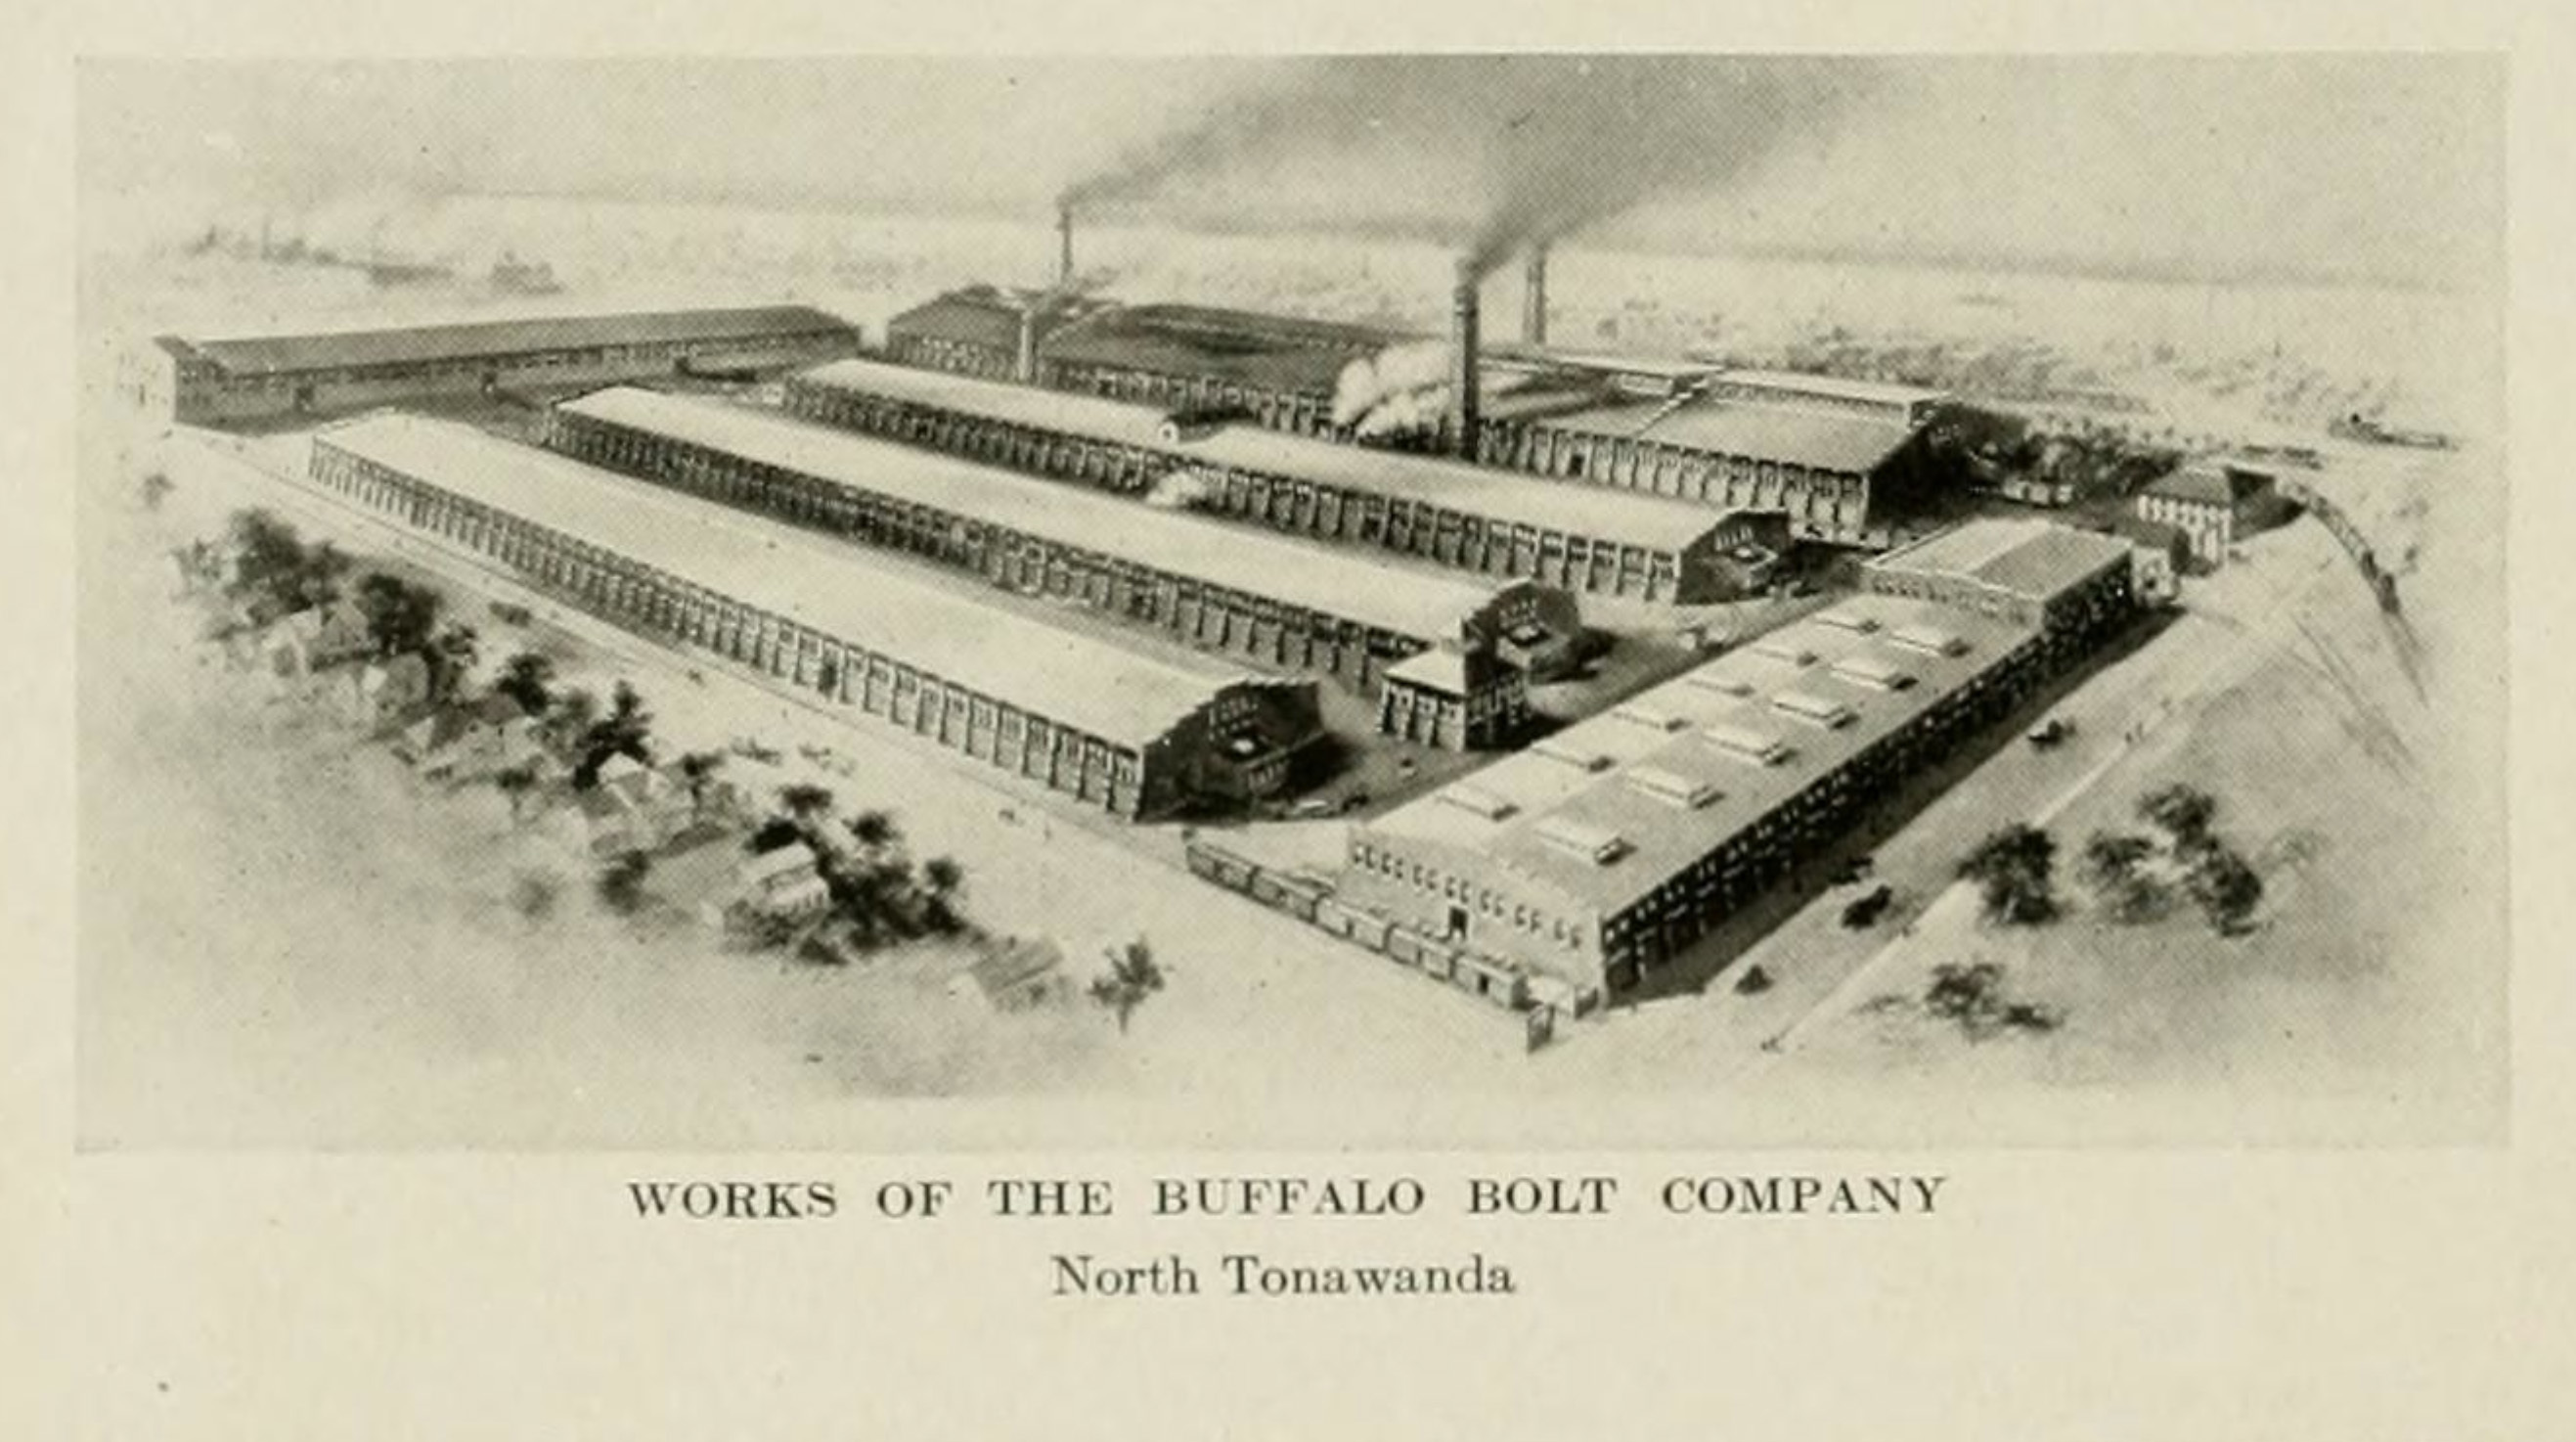 Works of the Buffalo Bolt Company, photo (Greater Buffalo & Niagara frontier, Buffalo Chamber of Commerce, 1914).jpg